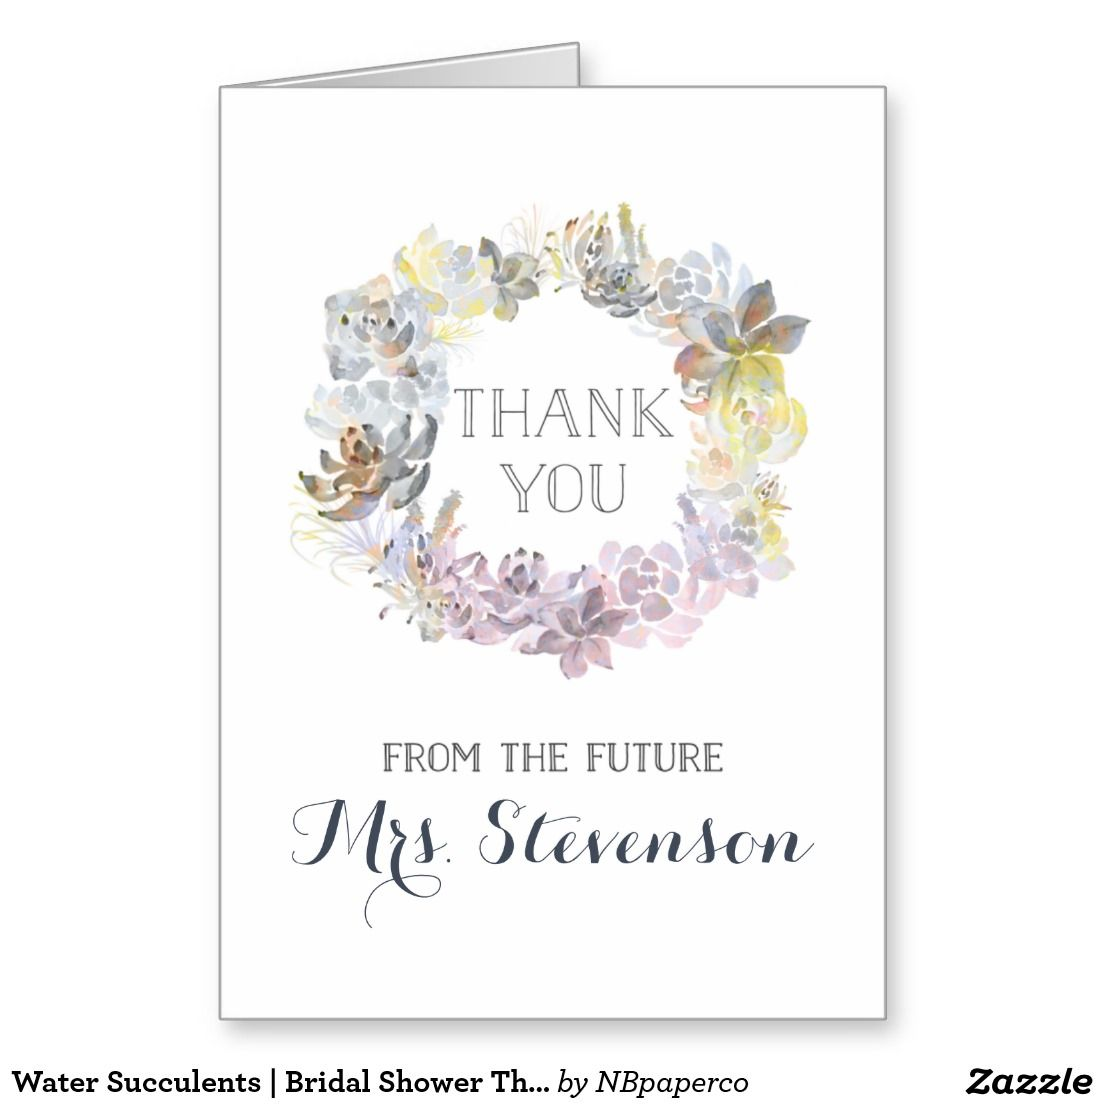 Water Succulents | Bridal Shower Thank You Stationery Note Card